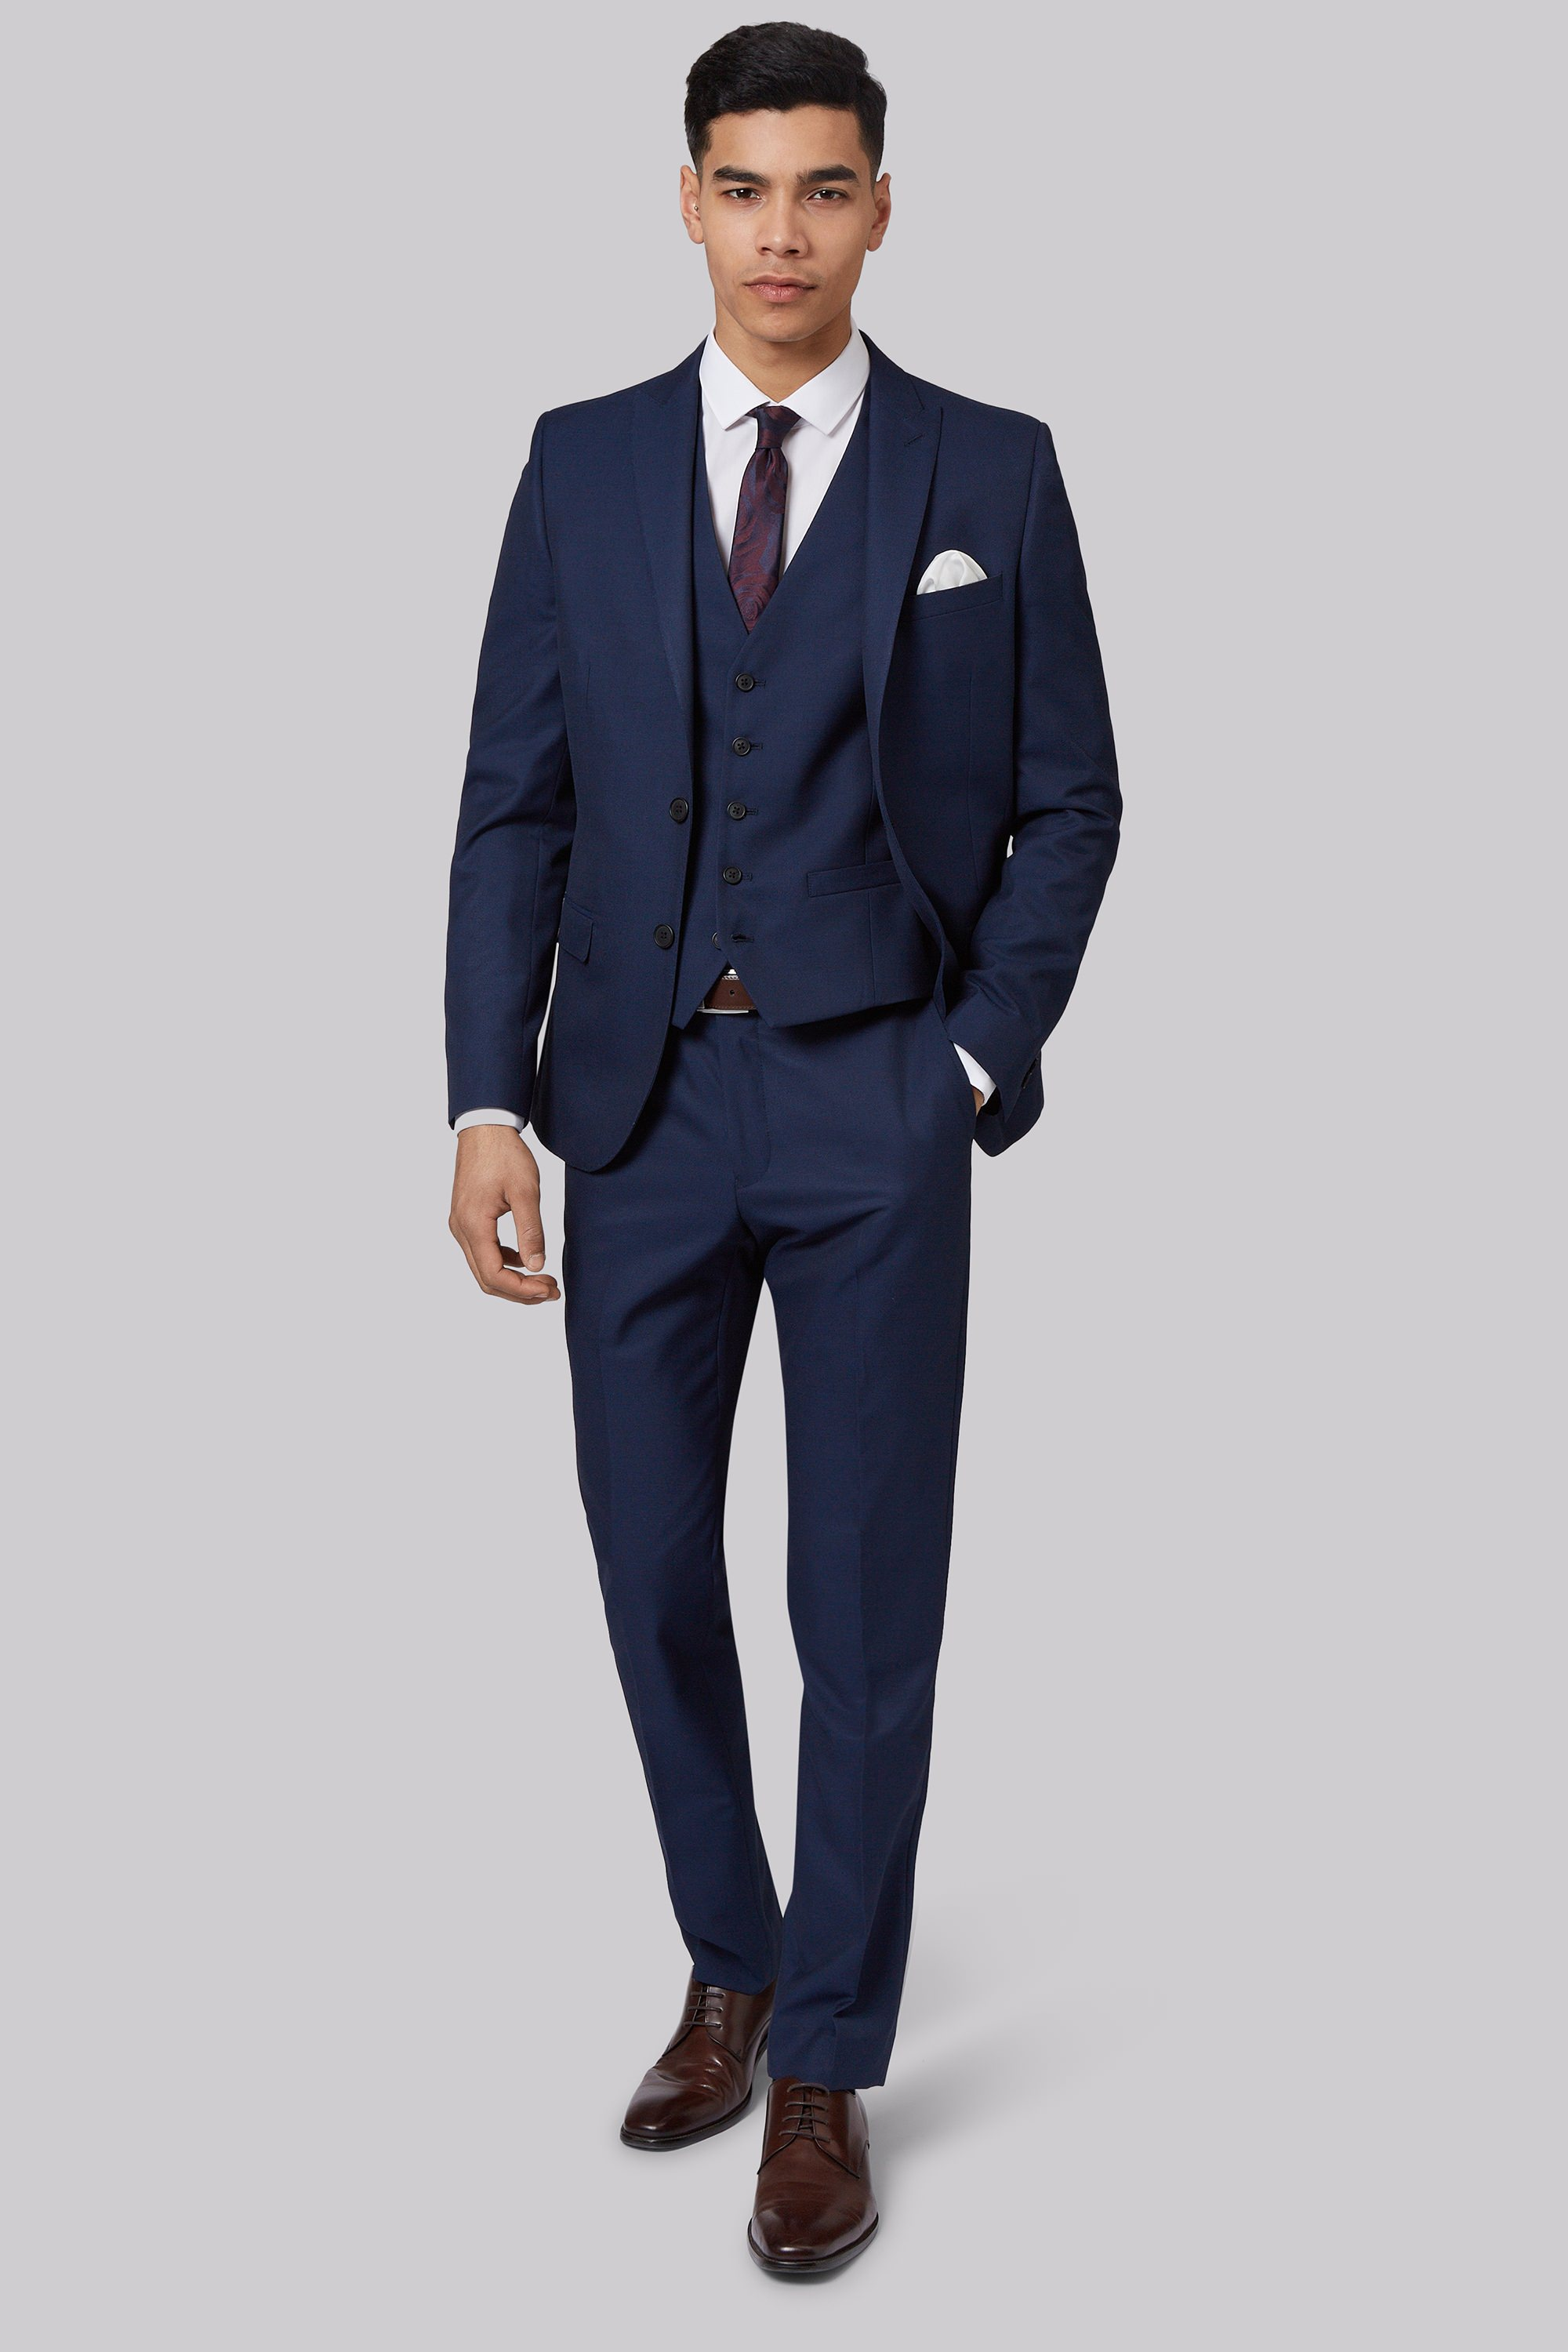 3 Piece Suits with Waistcoats for Men | Moss Bros